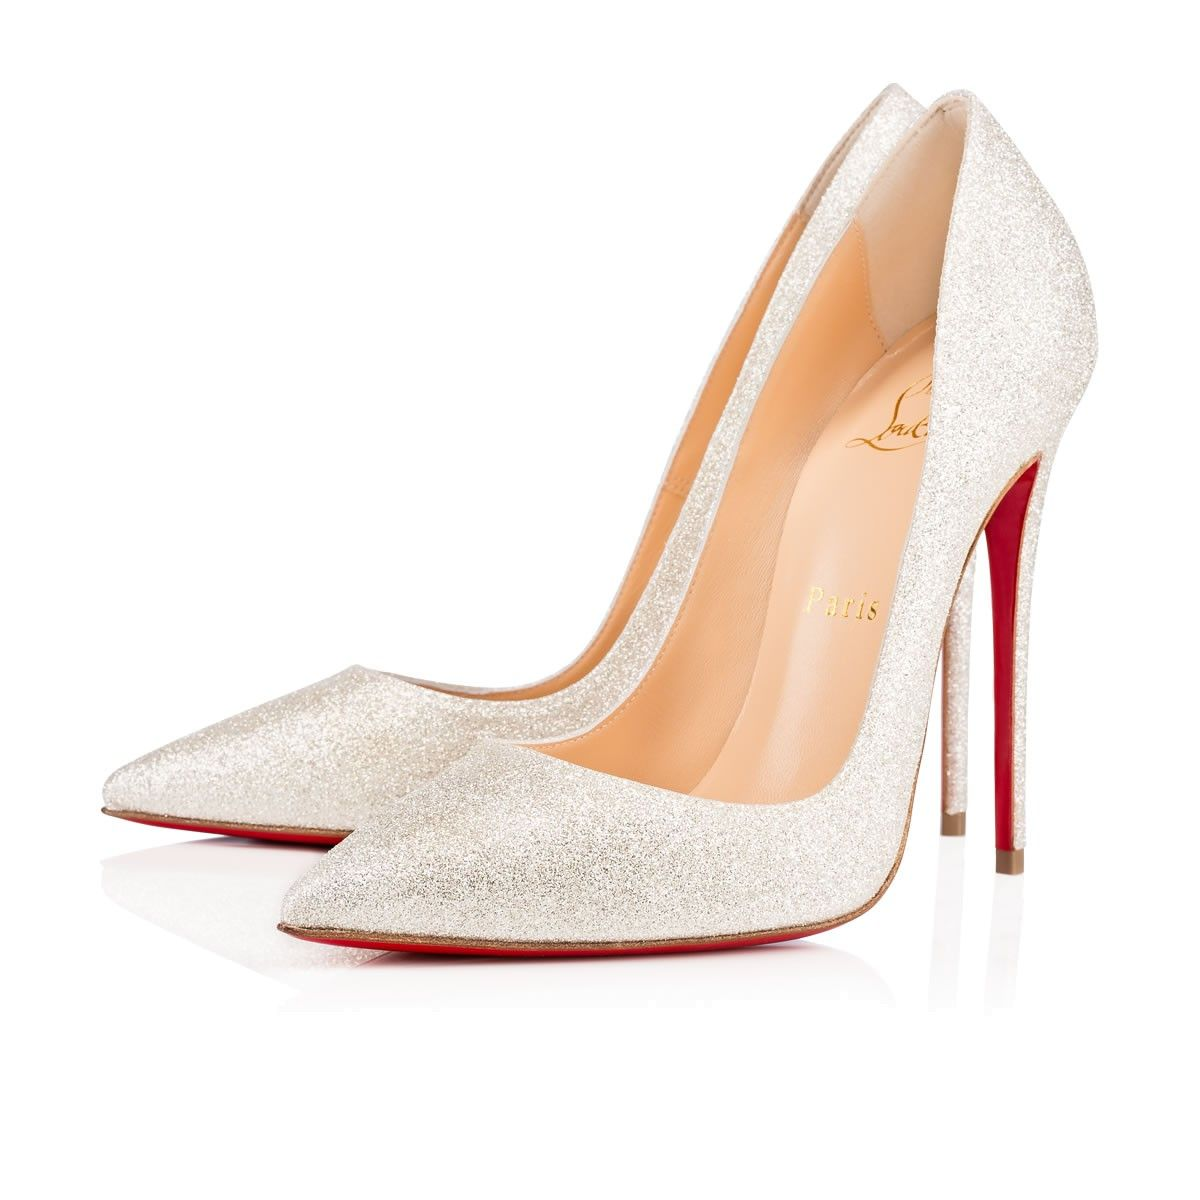 f2215c2846d5 CHRISTIAN LOUBOUTIN So Kate Glitter Mini 120 Ivory Glitter - Women Shoes - Christian  Louboutin.  christianlouboutin  shoes